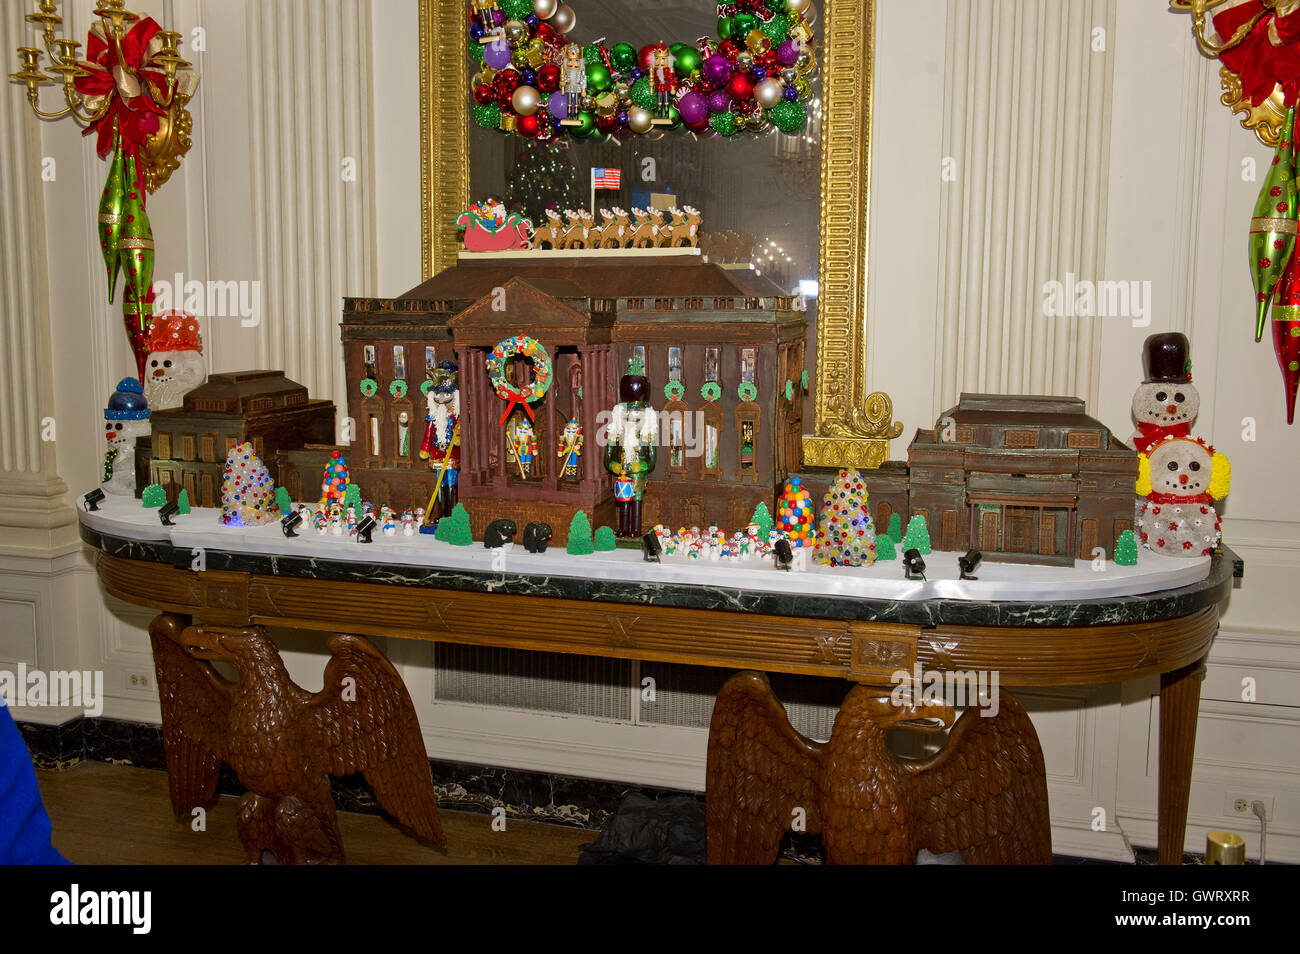 The traditional White House gingerbread house in the State